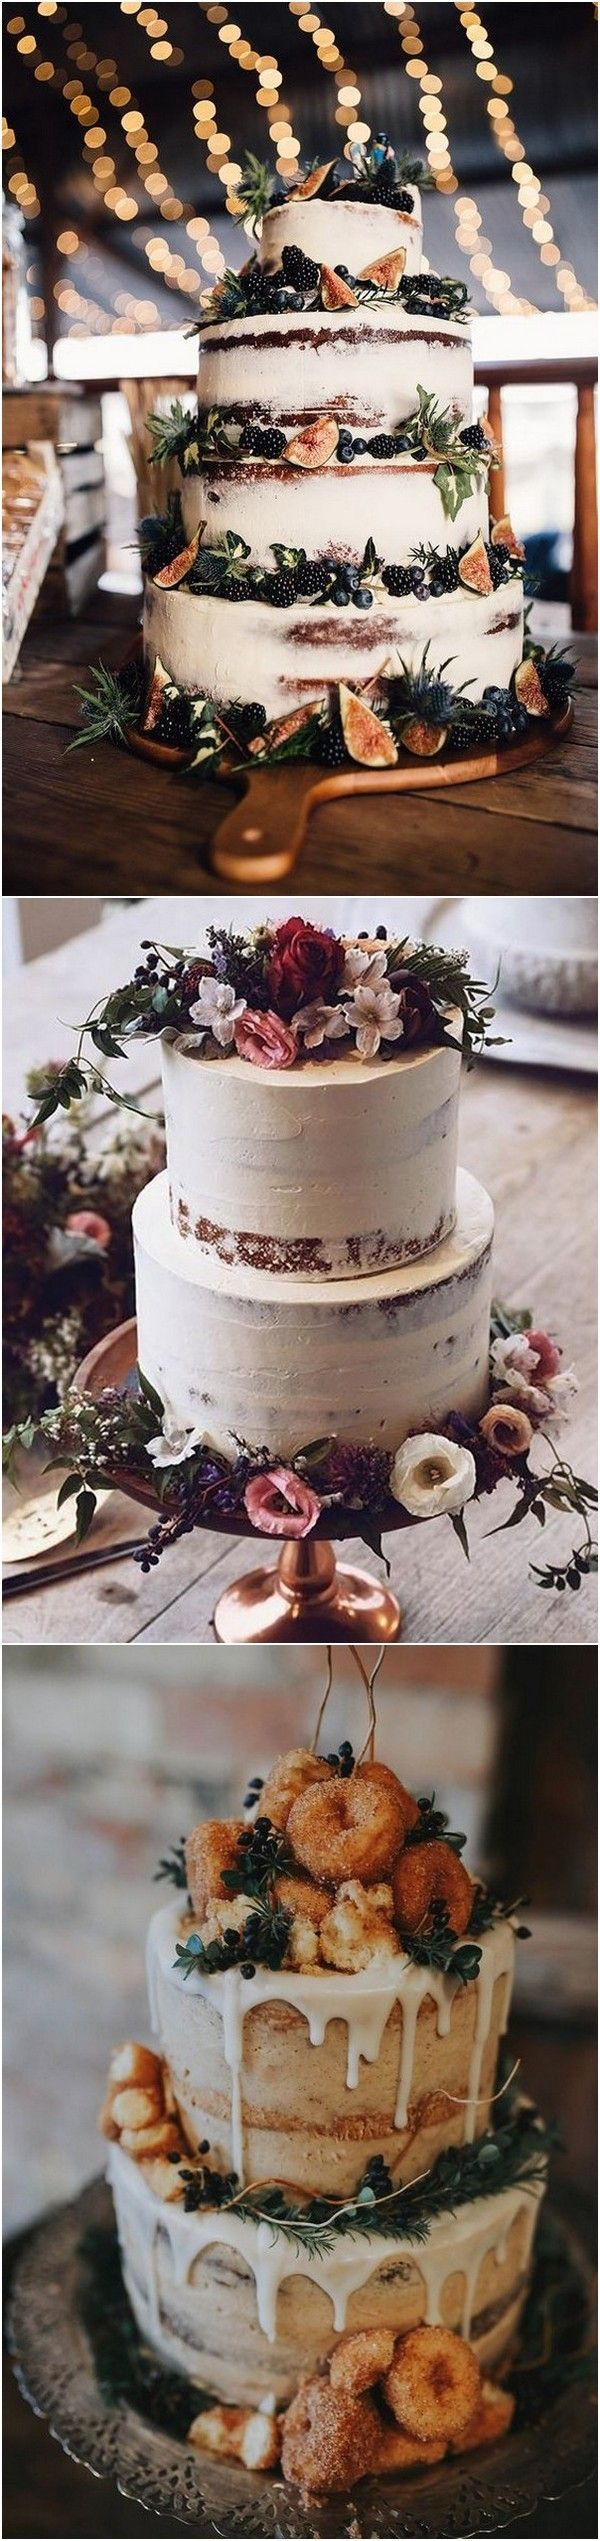 Wedding decorations dusty blue december 2018 Top  Gorgeous Wedding Cakes for Fall   Page  of   One Day